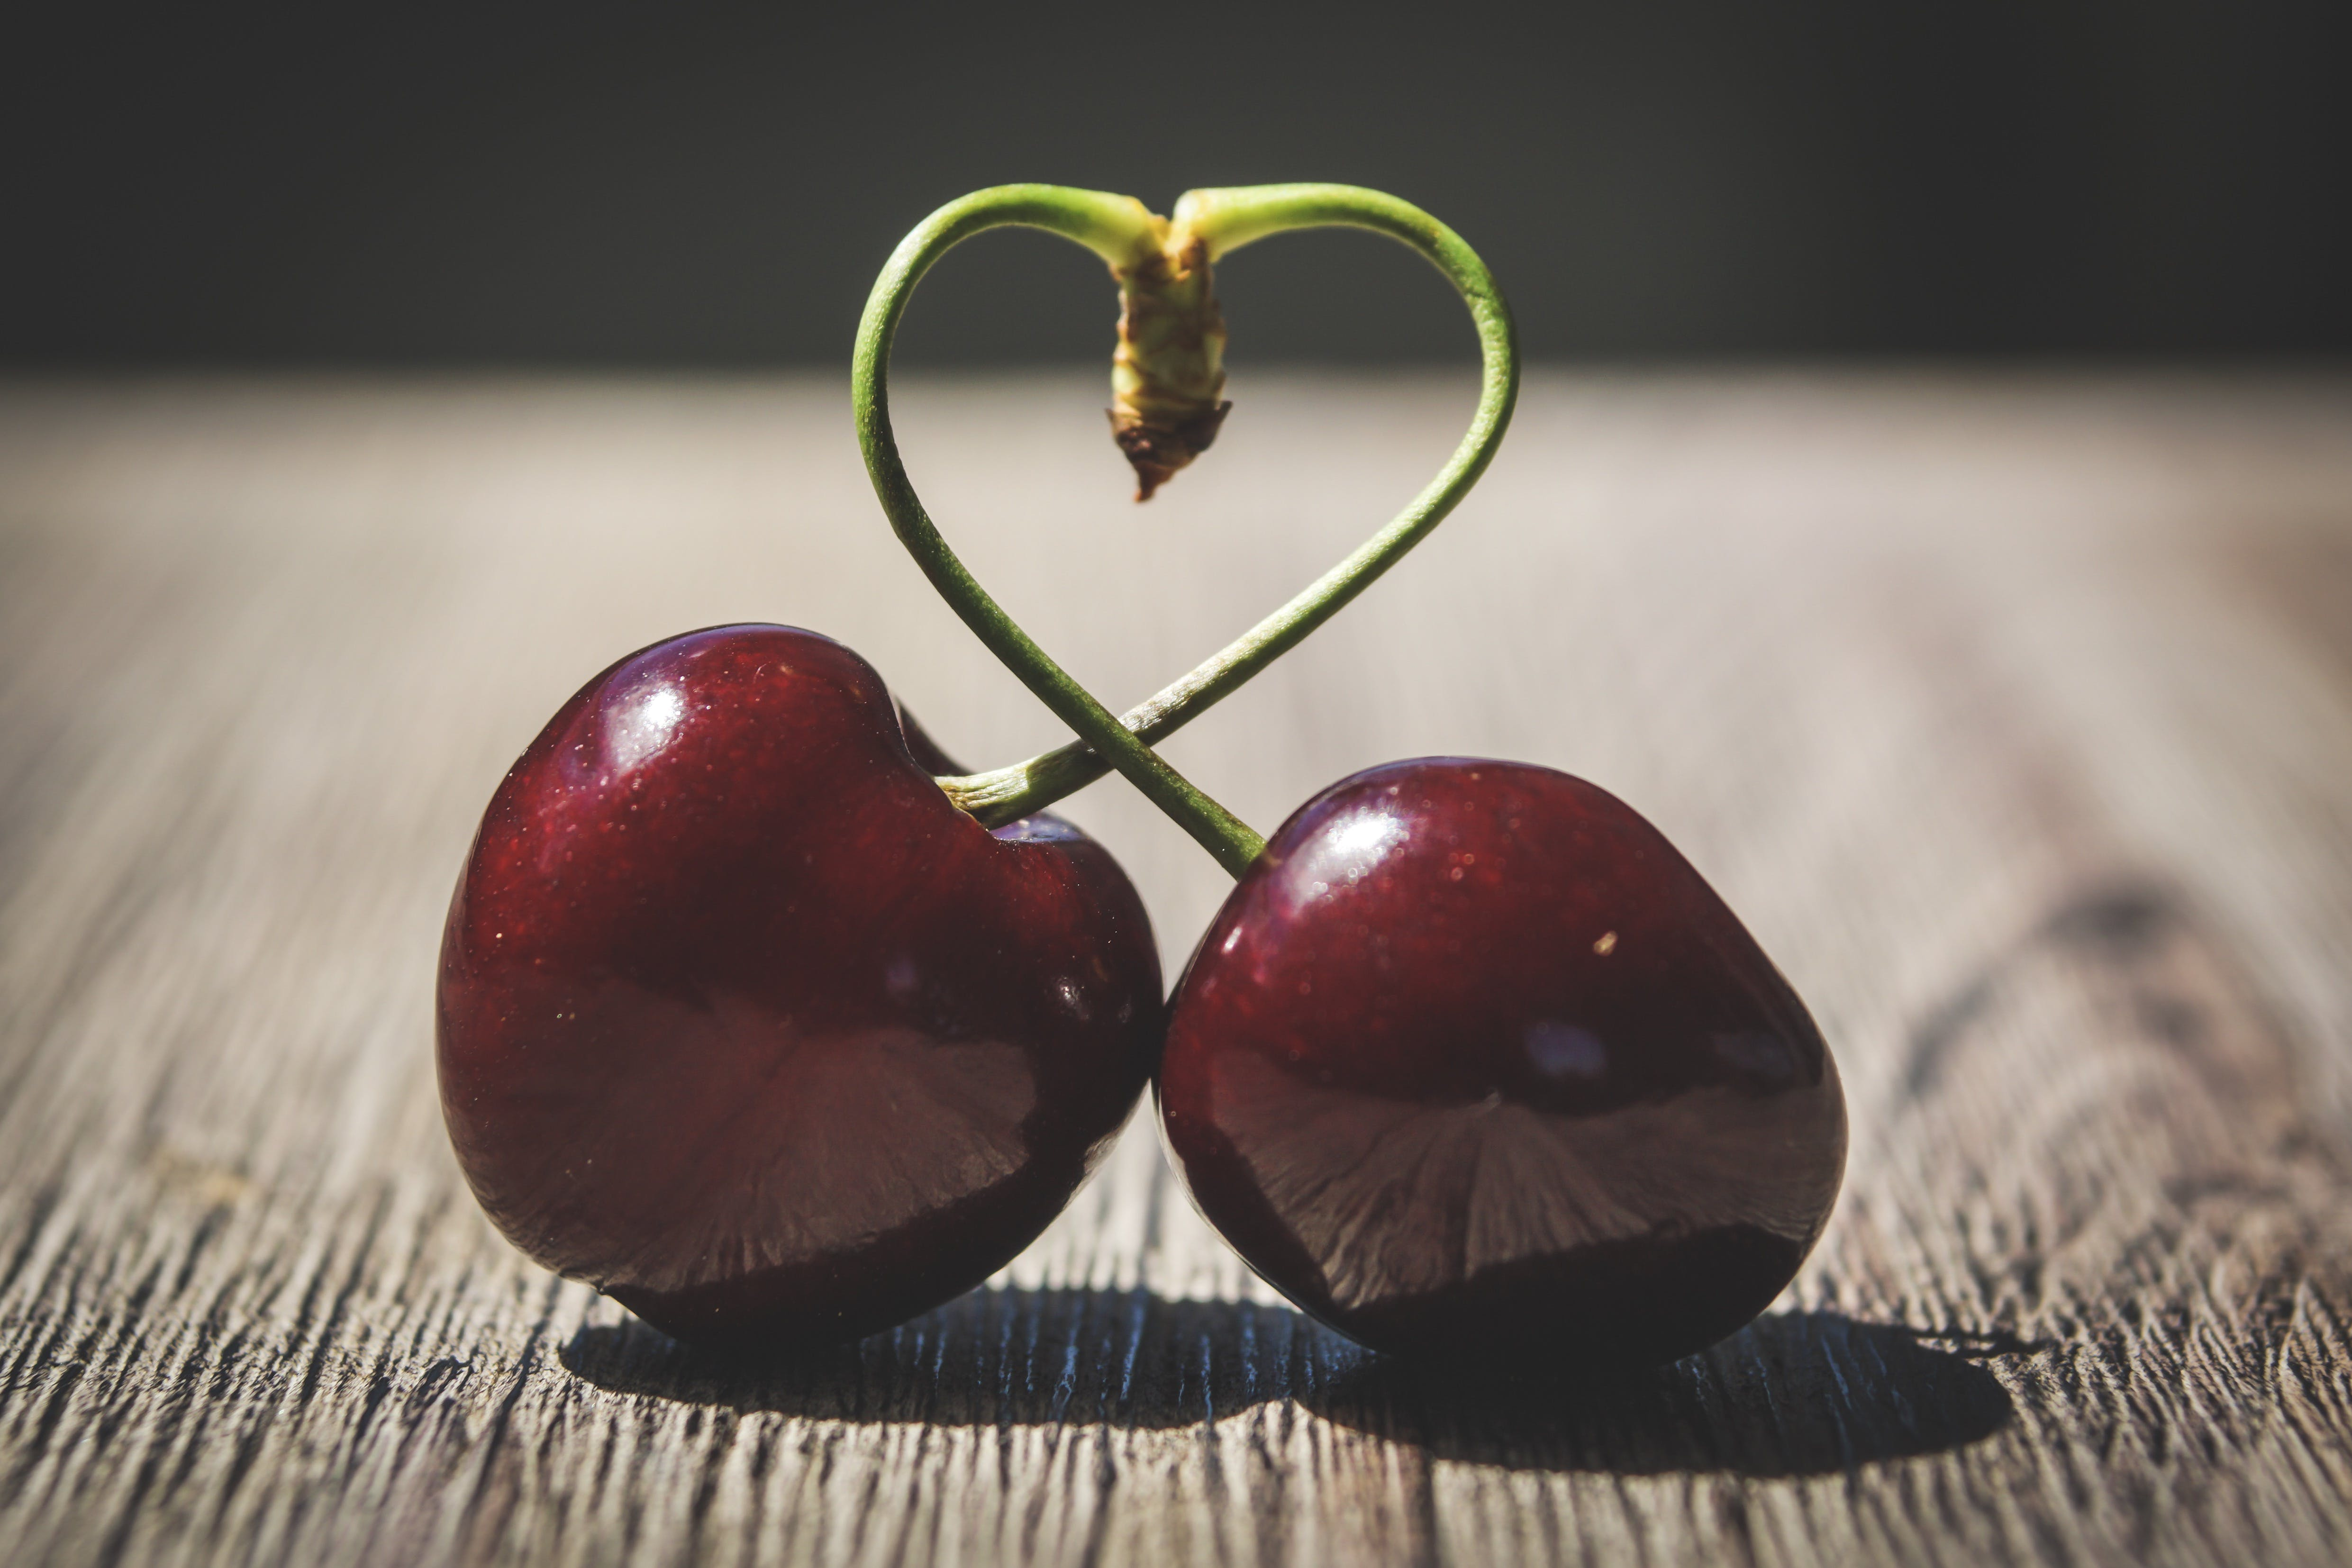 Two Red Cherries on Brown Surface